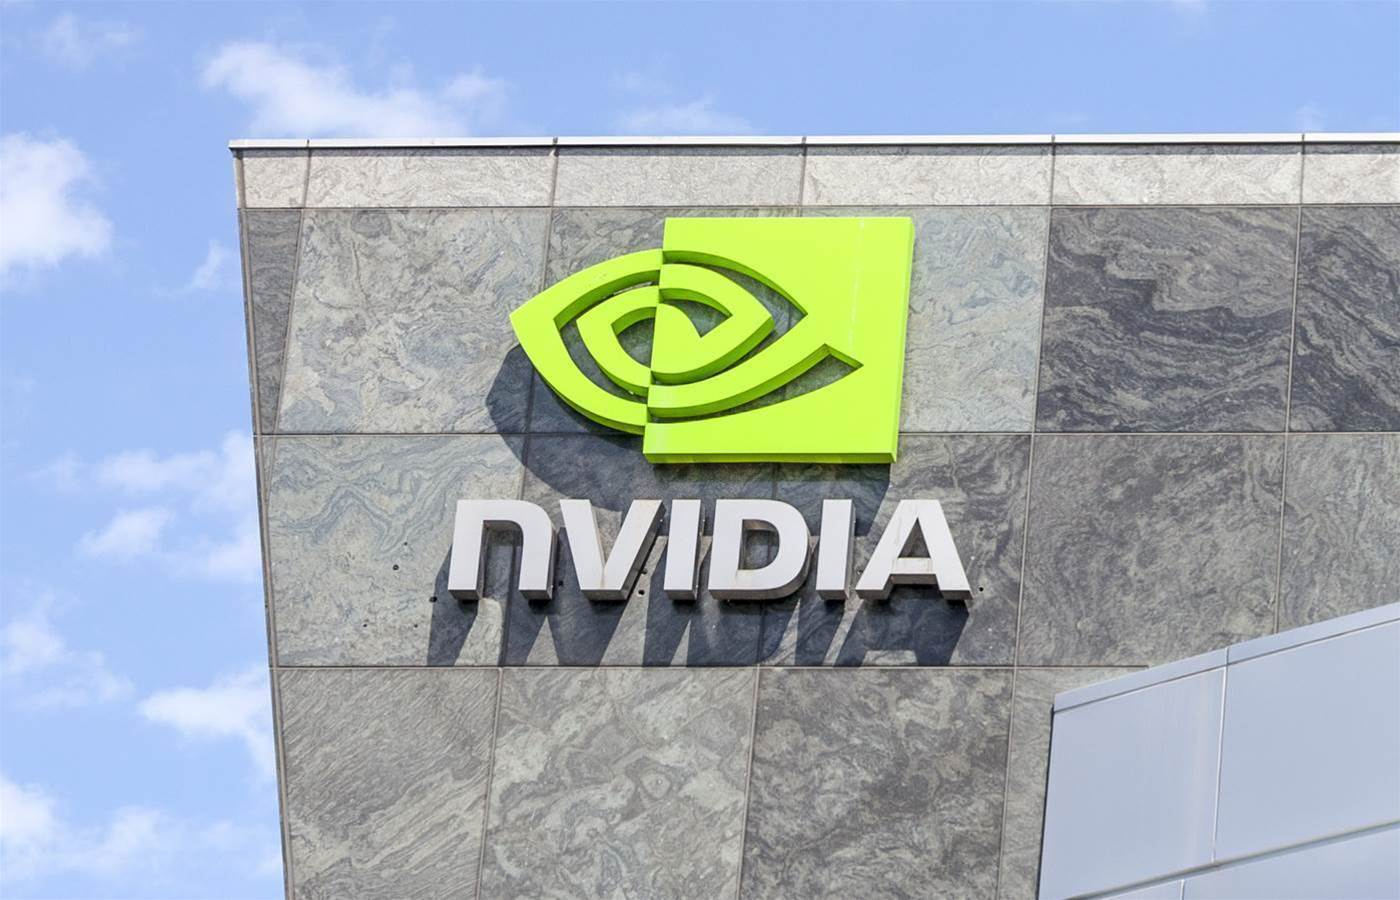 Nvidia reportedly puts in bid for Israeli chip firm Mellanox